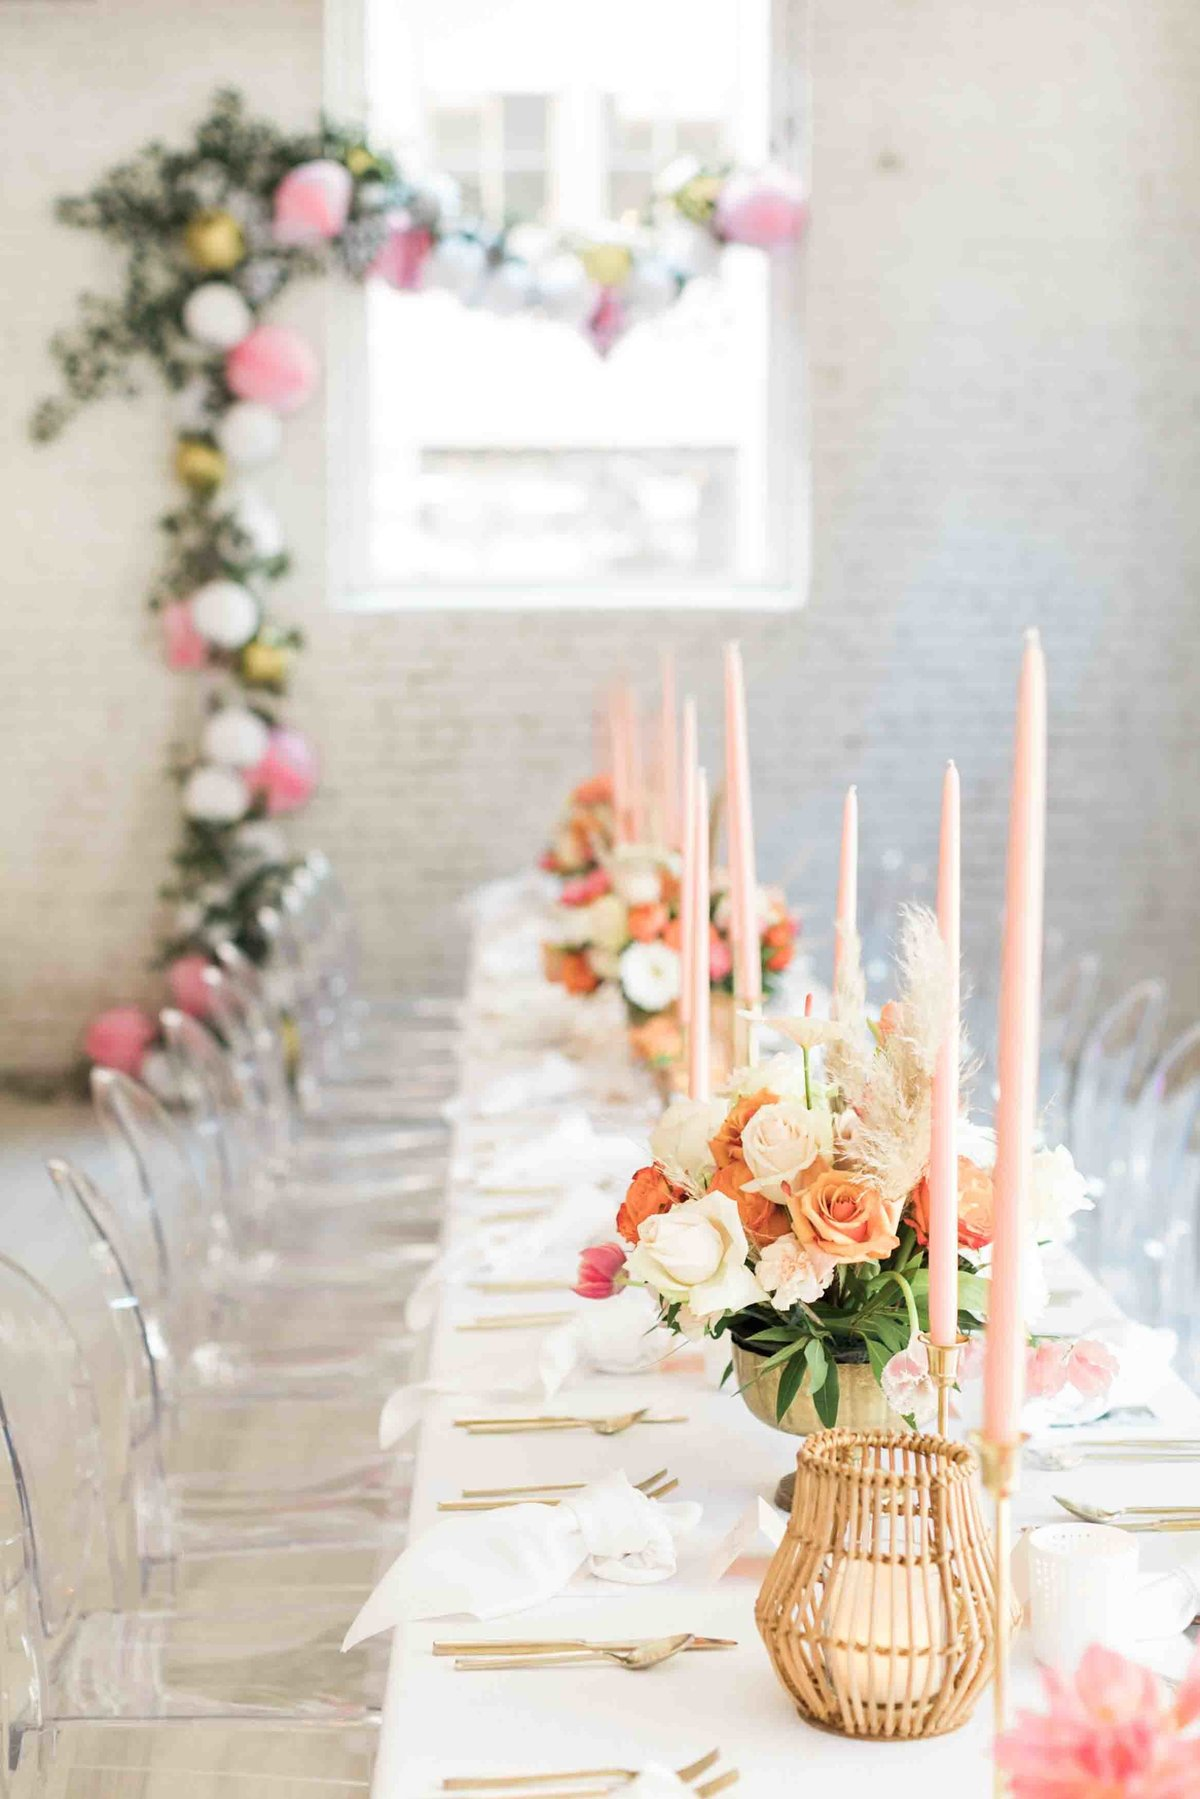 Joanna_Monger_Photography_event_photography-18